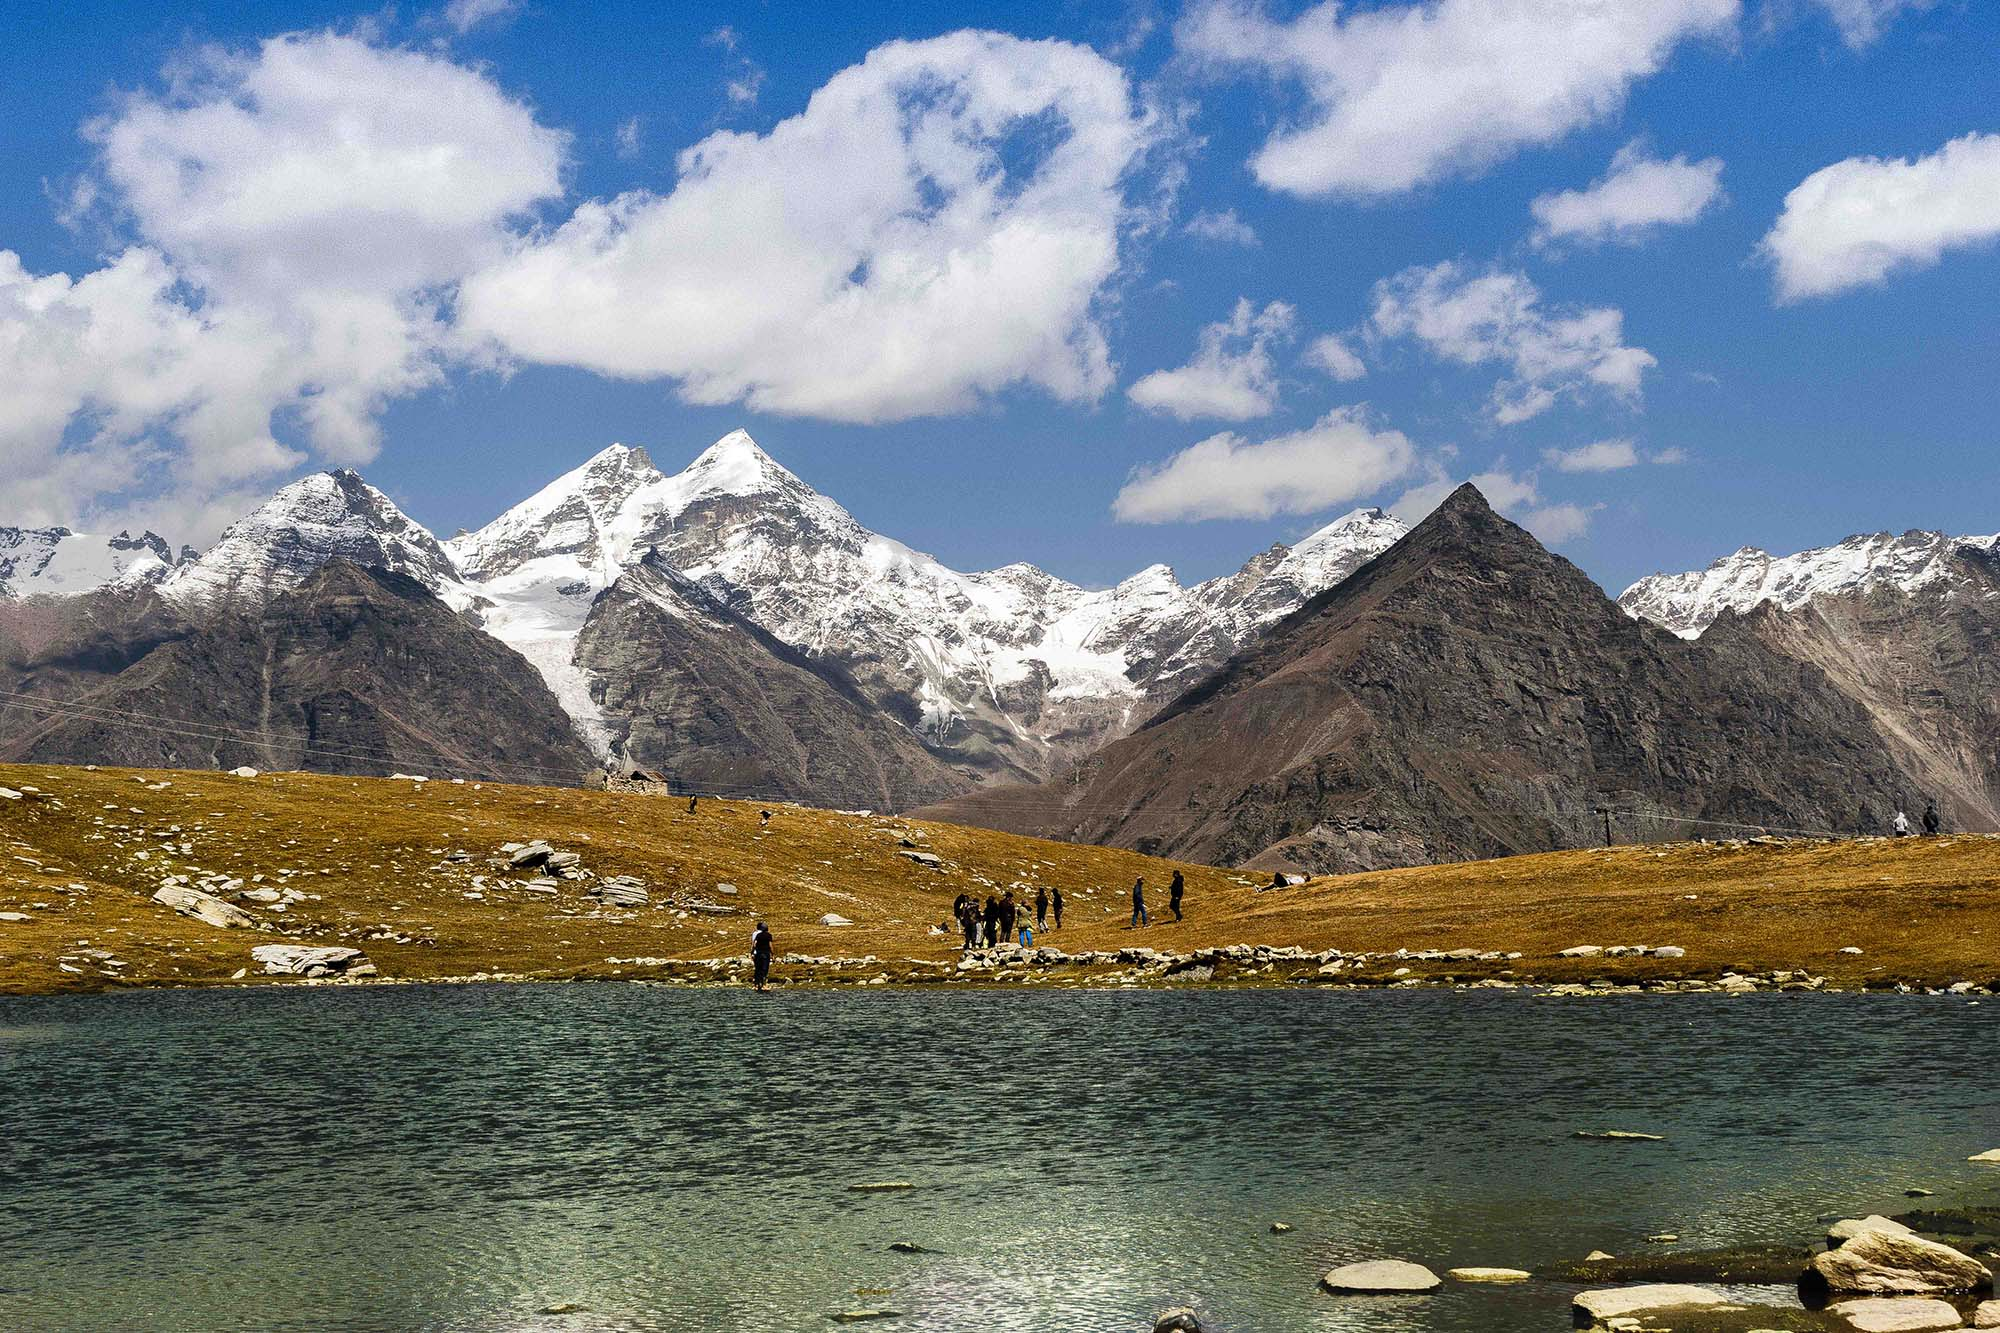 The pass provides a natural divide between the Kullu Valley with a primarily Hindu culture (in the south), and the arid high-altitude Lahaul and Spiti valleys with a Buddhist culture (in the north). The pass lies on the watershed between the Chenab and Beas basins. On the southern side of this pass, the Beas River emerges from underground and flows southward and on its northern side, the Chandra River (flows from the eastern Himalayas), a source stream of the river Chenab, flows westward.